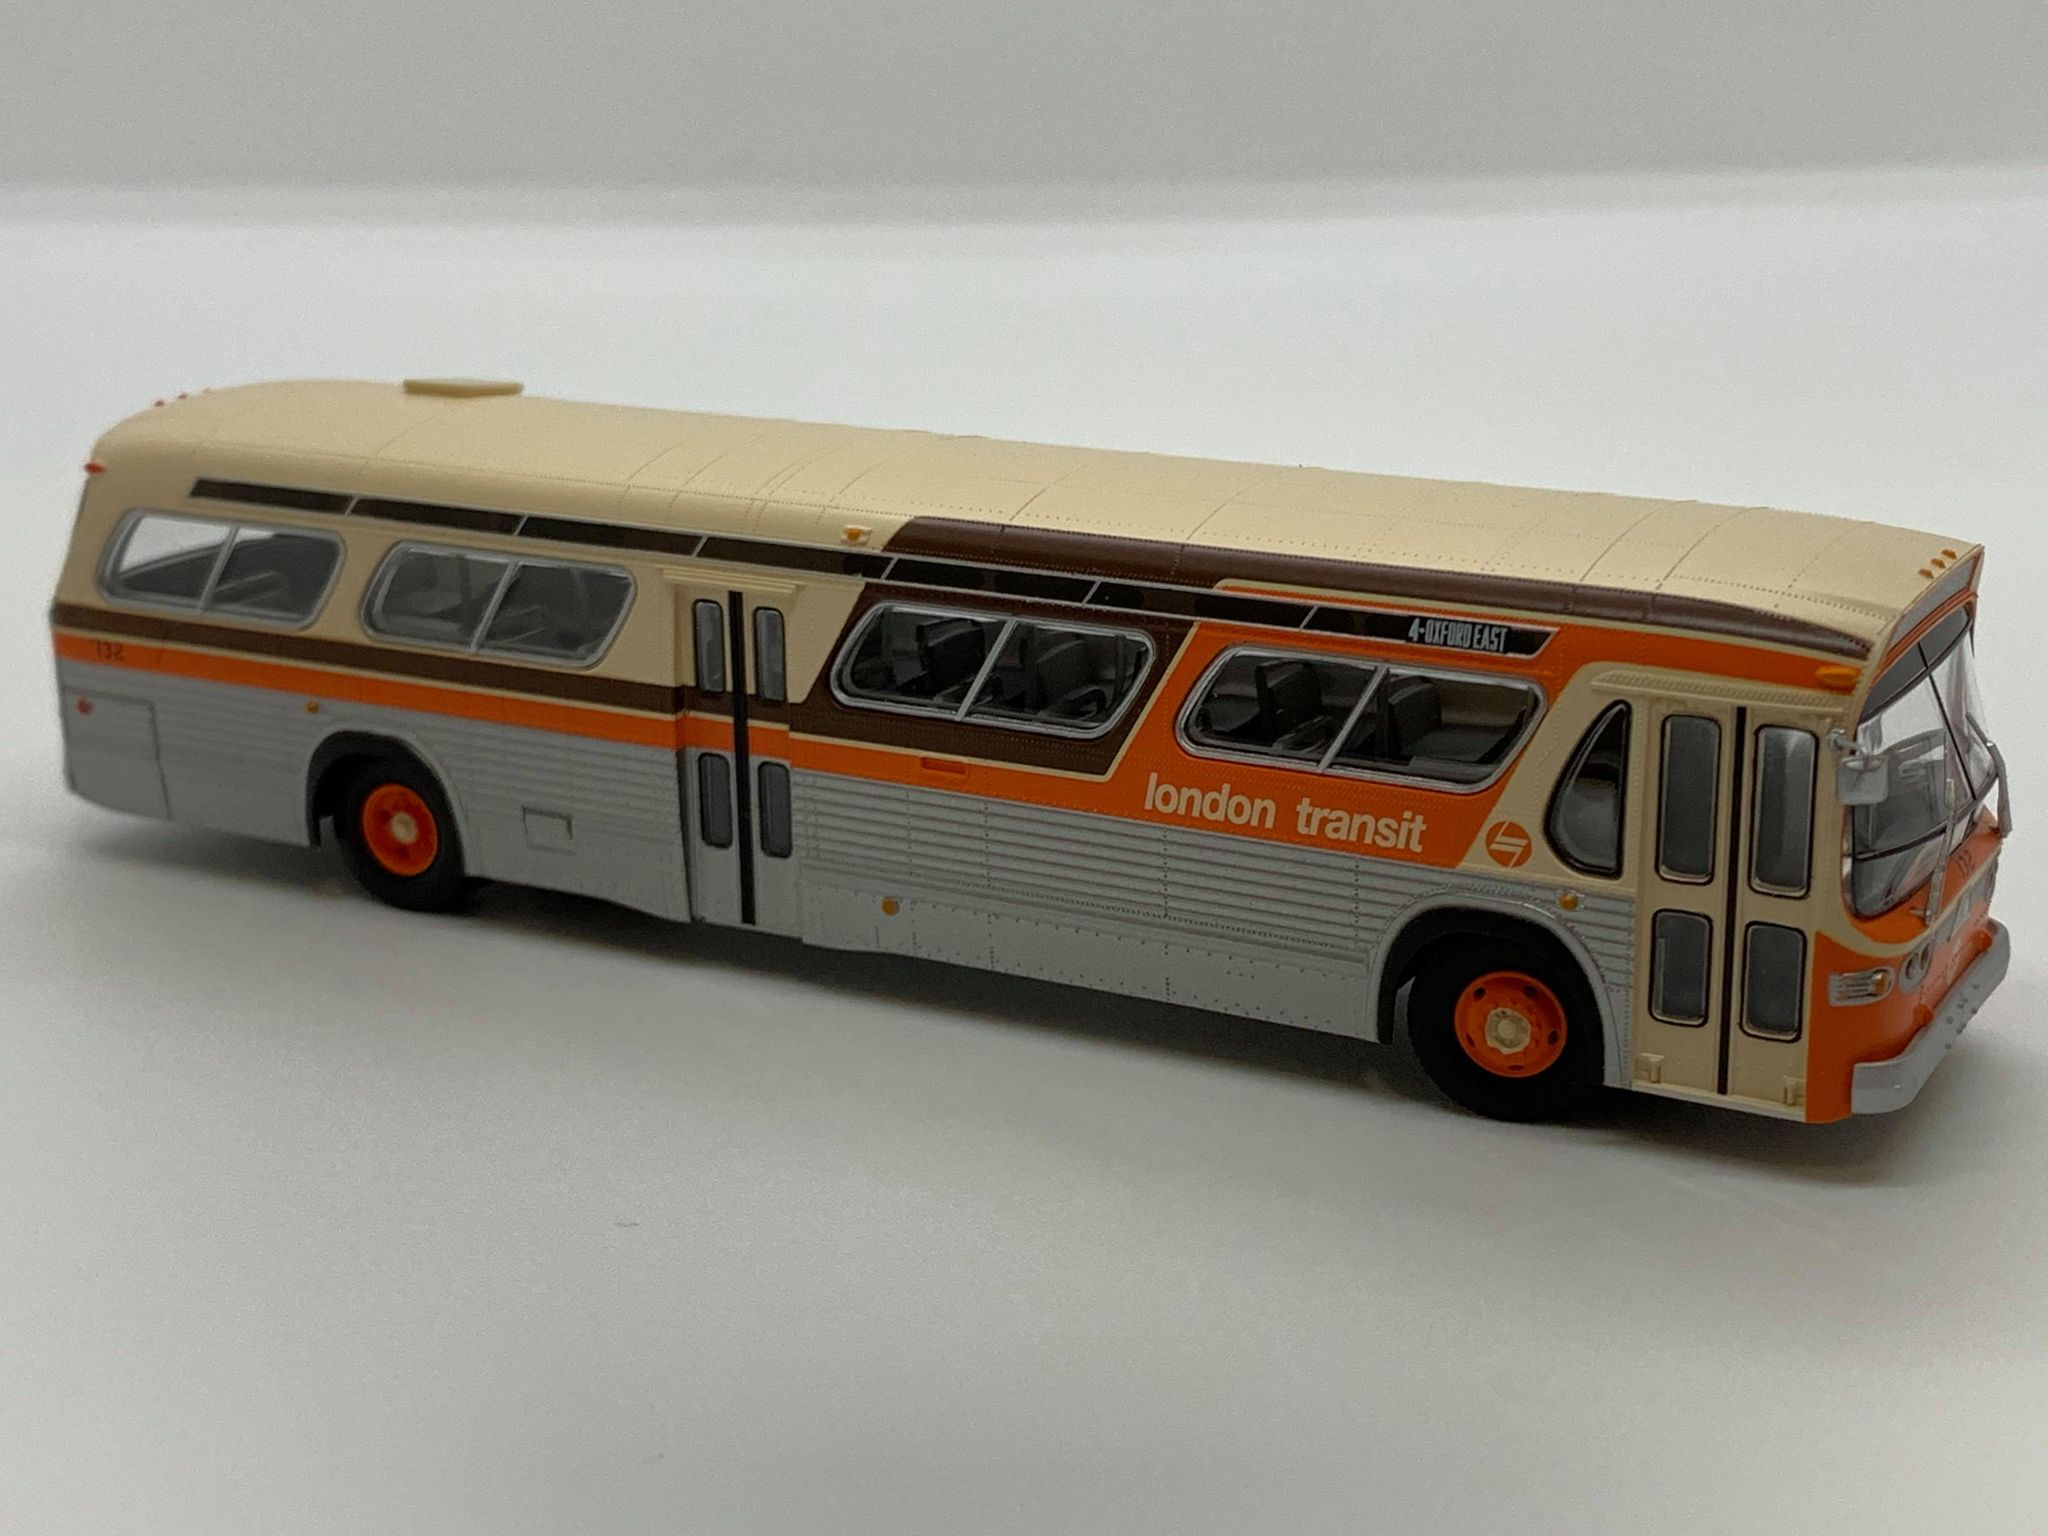 Rapido Trains 753094 HO New Look Bus Exclusive London Transit Commission (Orange/Brown)#132 4 - Oxford East Deluxe